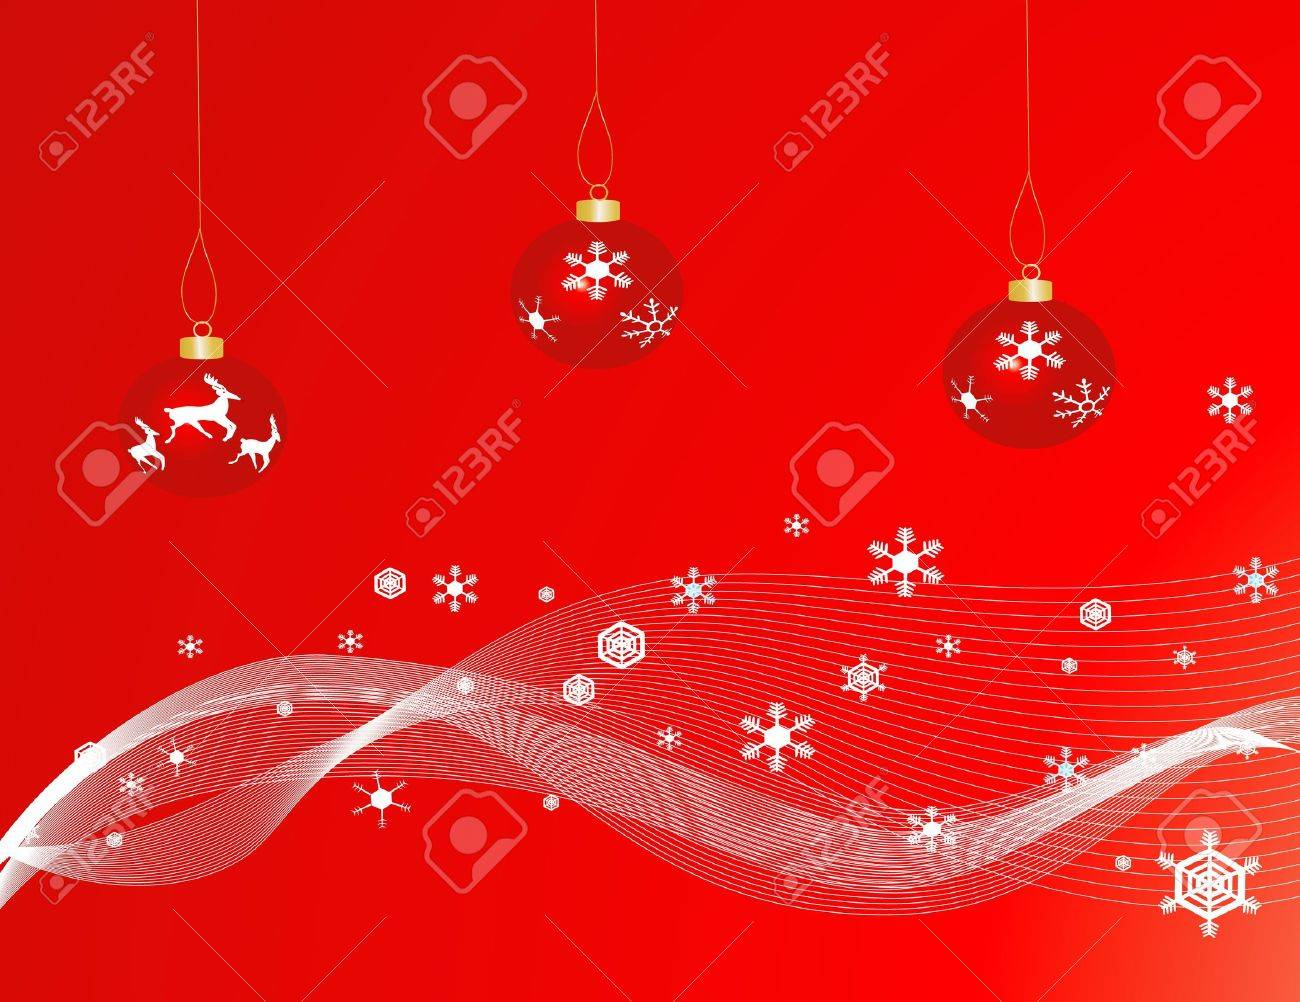 Red Christmas baubles against a red backgound with snowflakes Stock Photo - 1753970